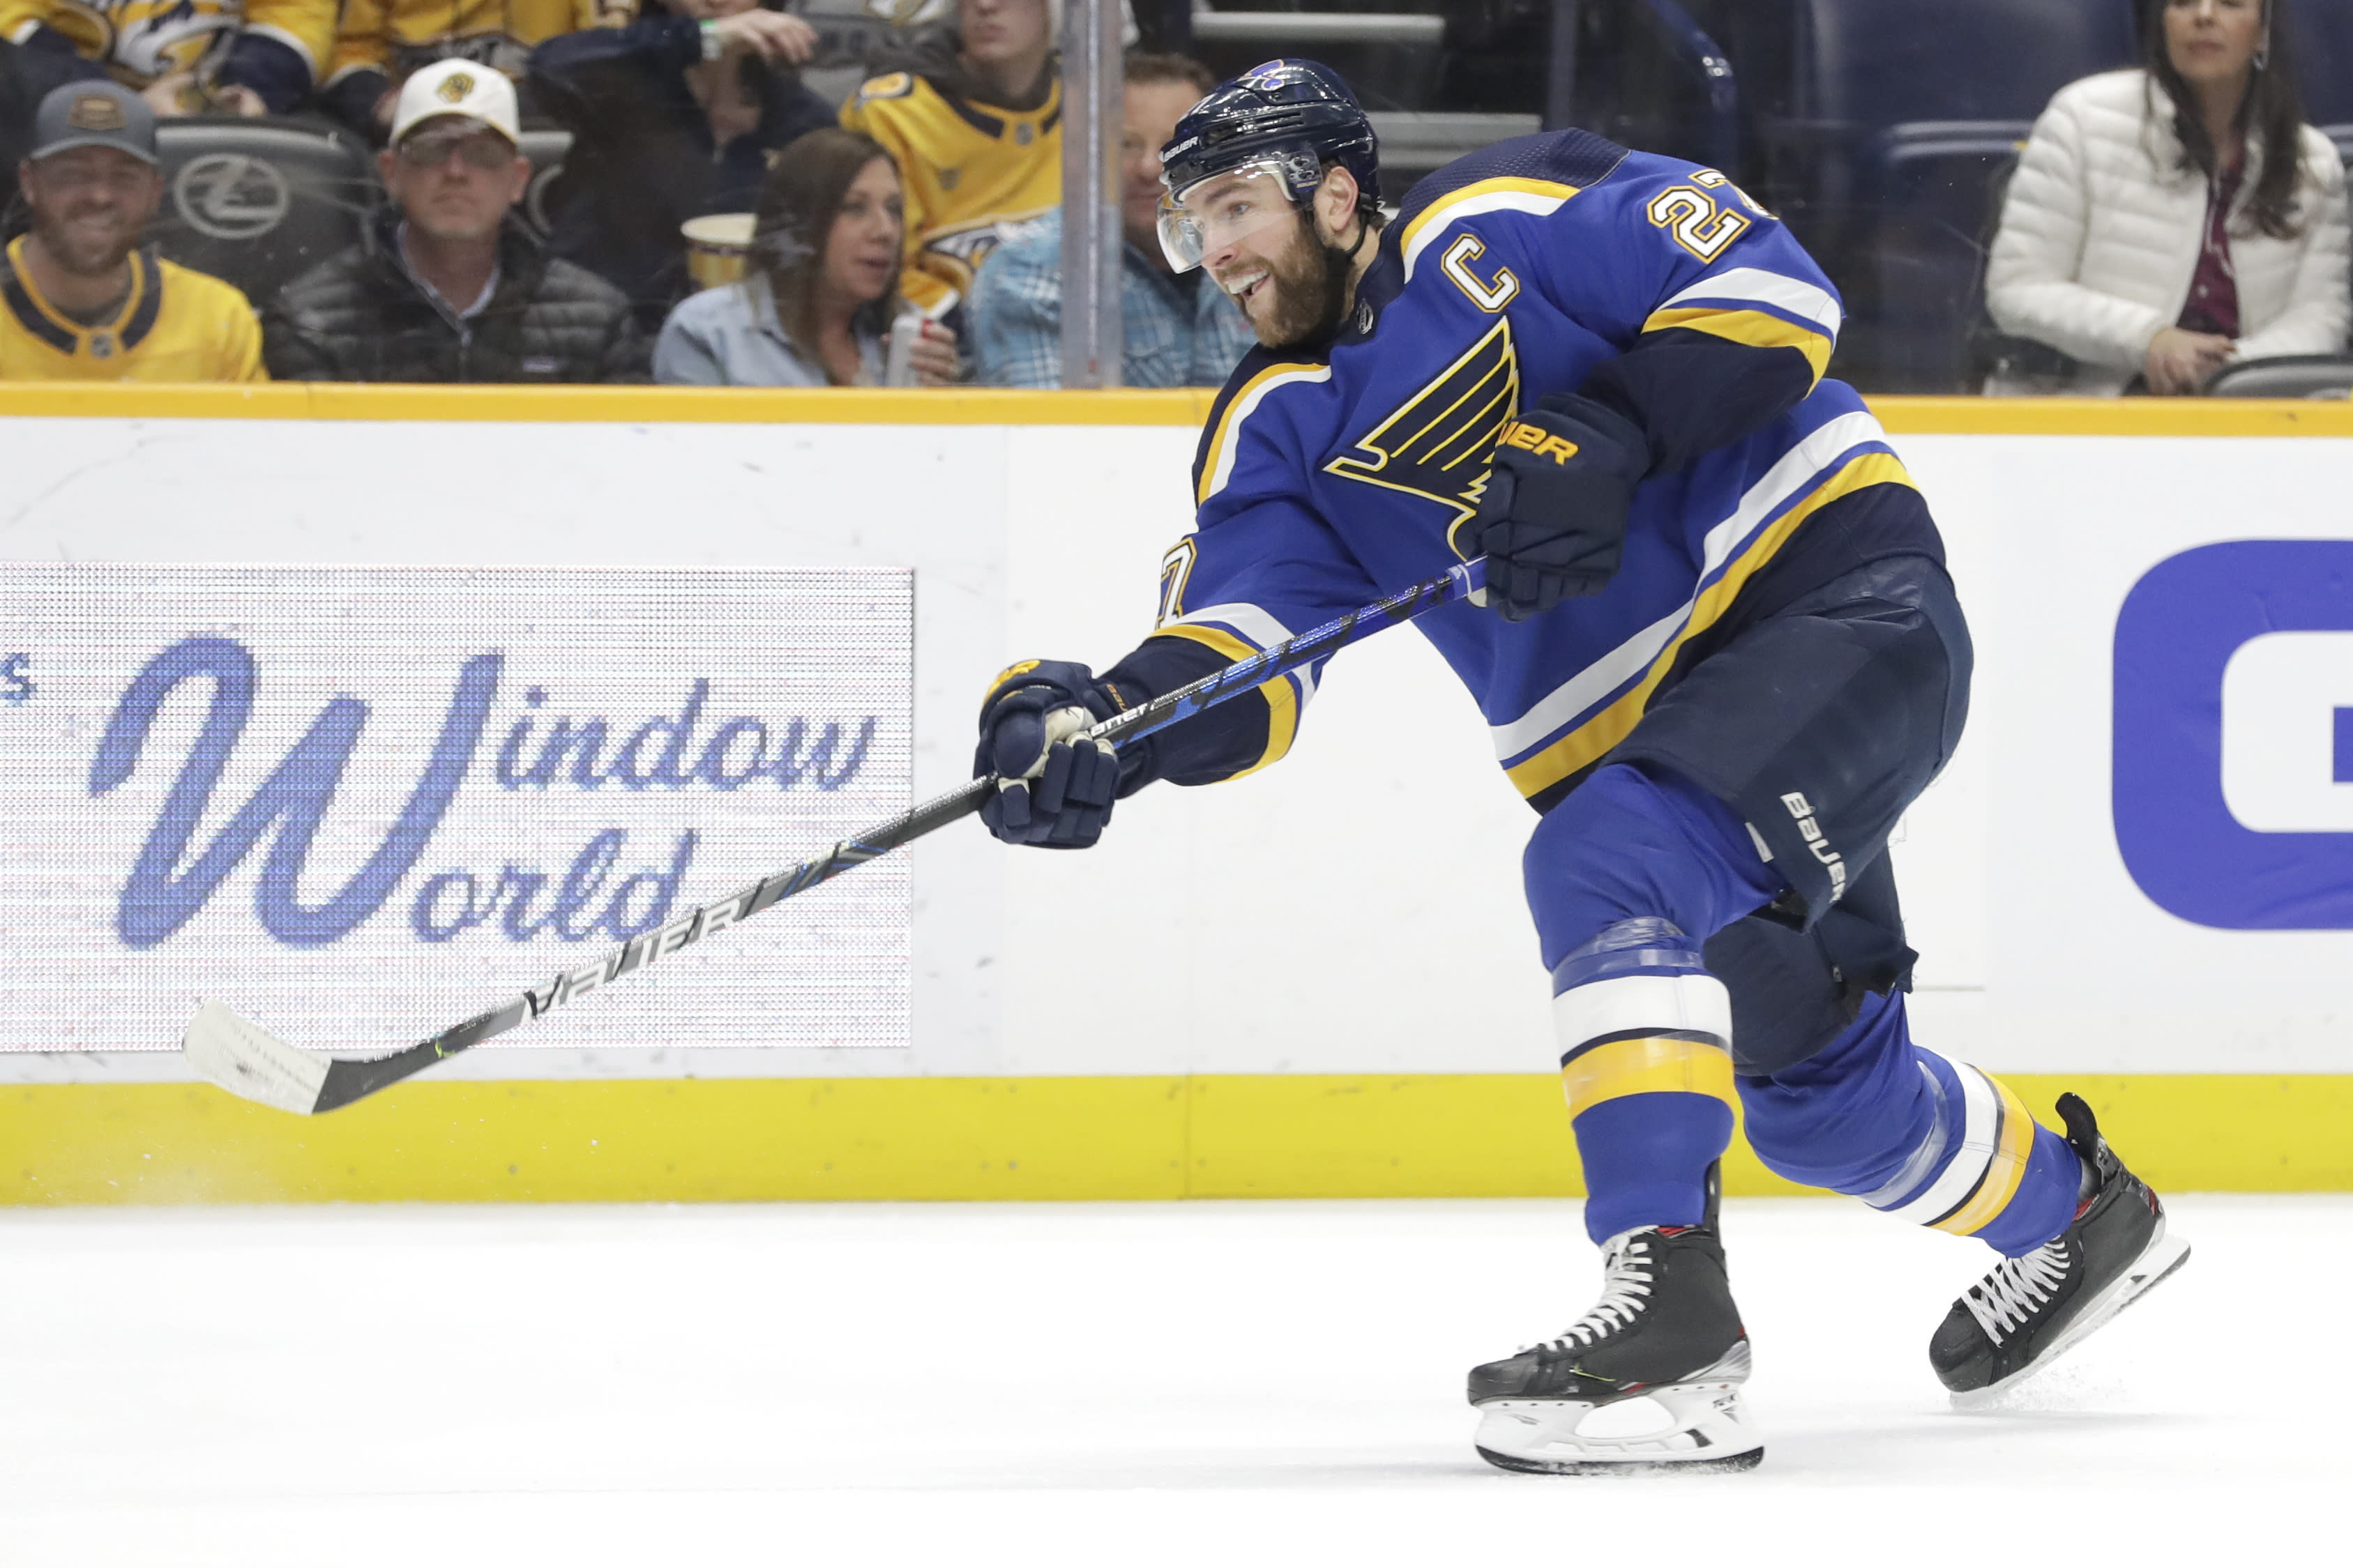 FILE - In this Feb. 16, 2020, file photo, St. Louis Blues defenseman Alex Pietrangelo plays against the Nashville Predators in the first period of an NHL hockey game in Nashville, Tenn. The Vegas Golden Knights have agreed to terms on a $61.6 million, seven-year contract with top free agent Pietrangelo, a person with direct knowledge of the move tells The Associated Press. (AP Photo/Mark Humphrey, File)